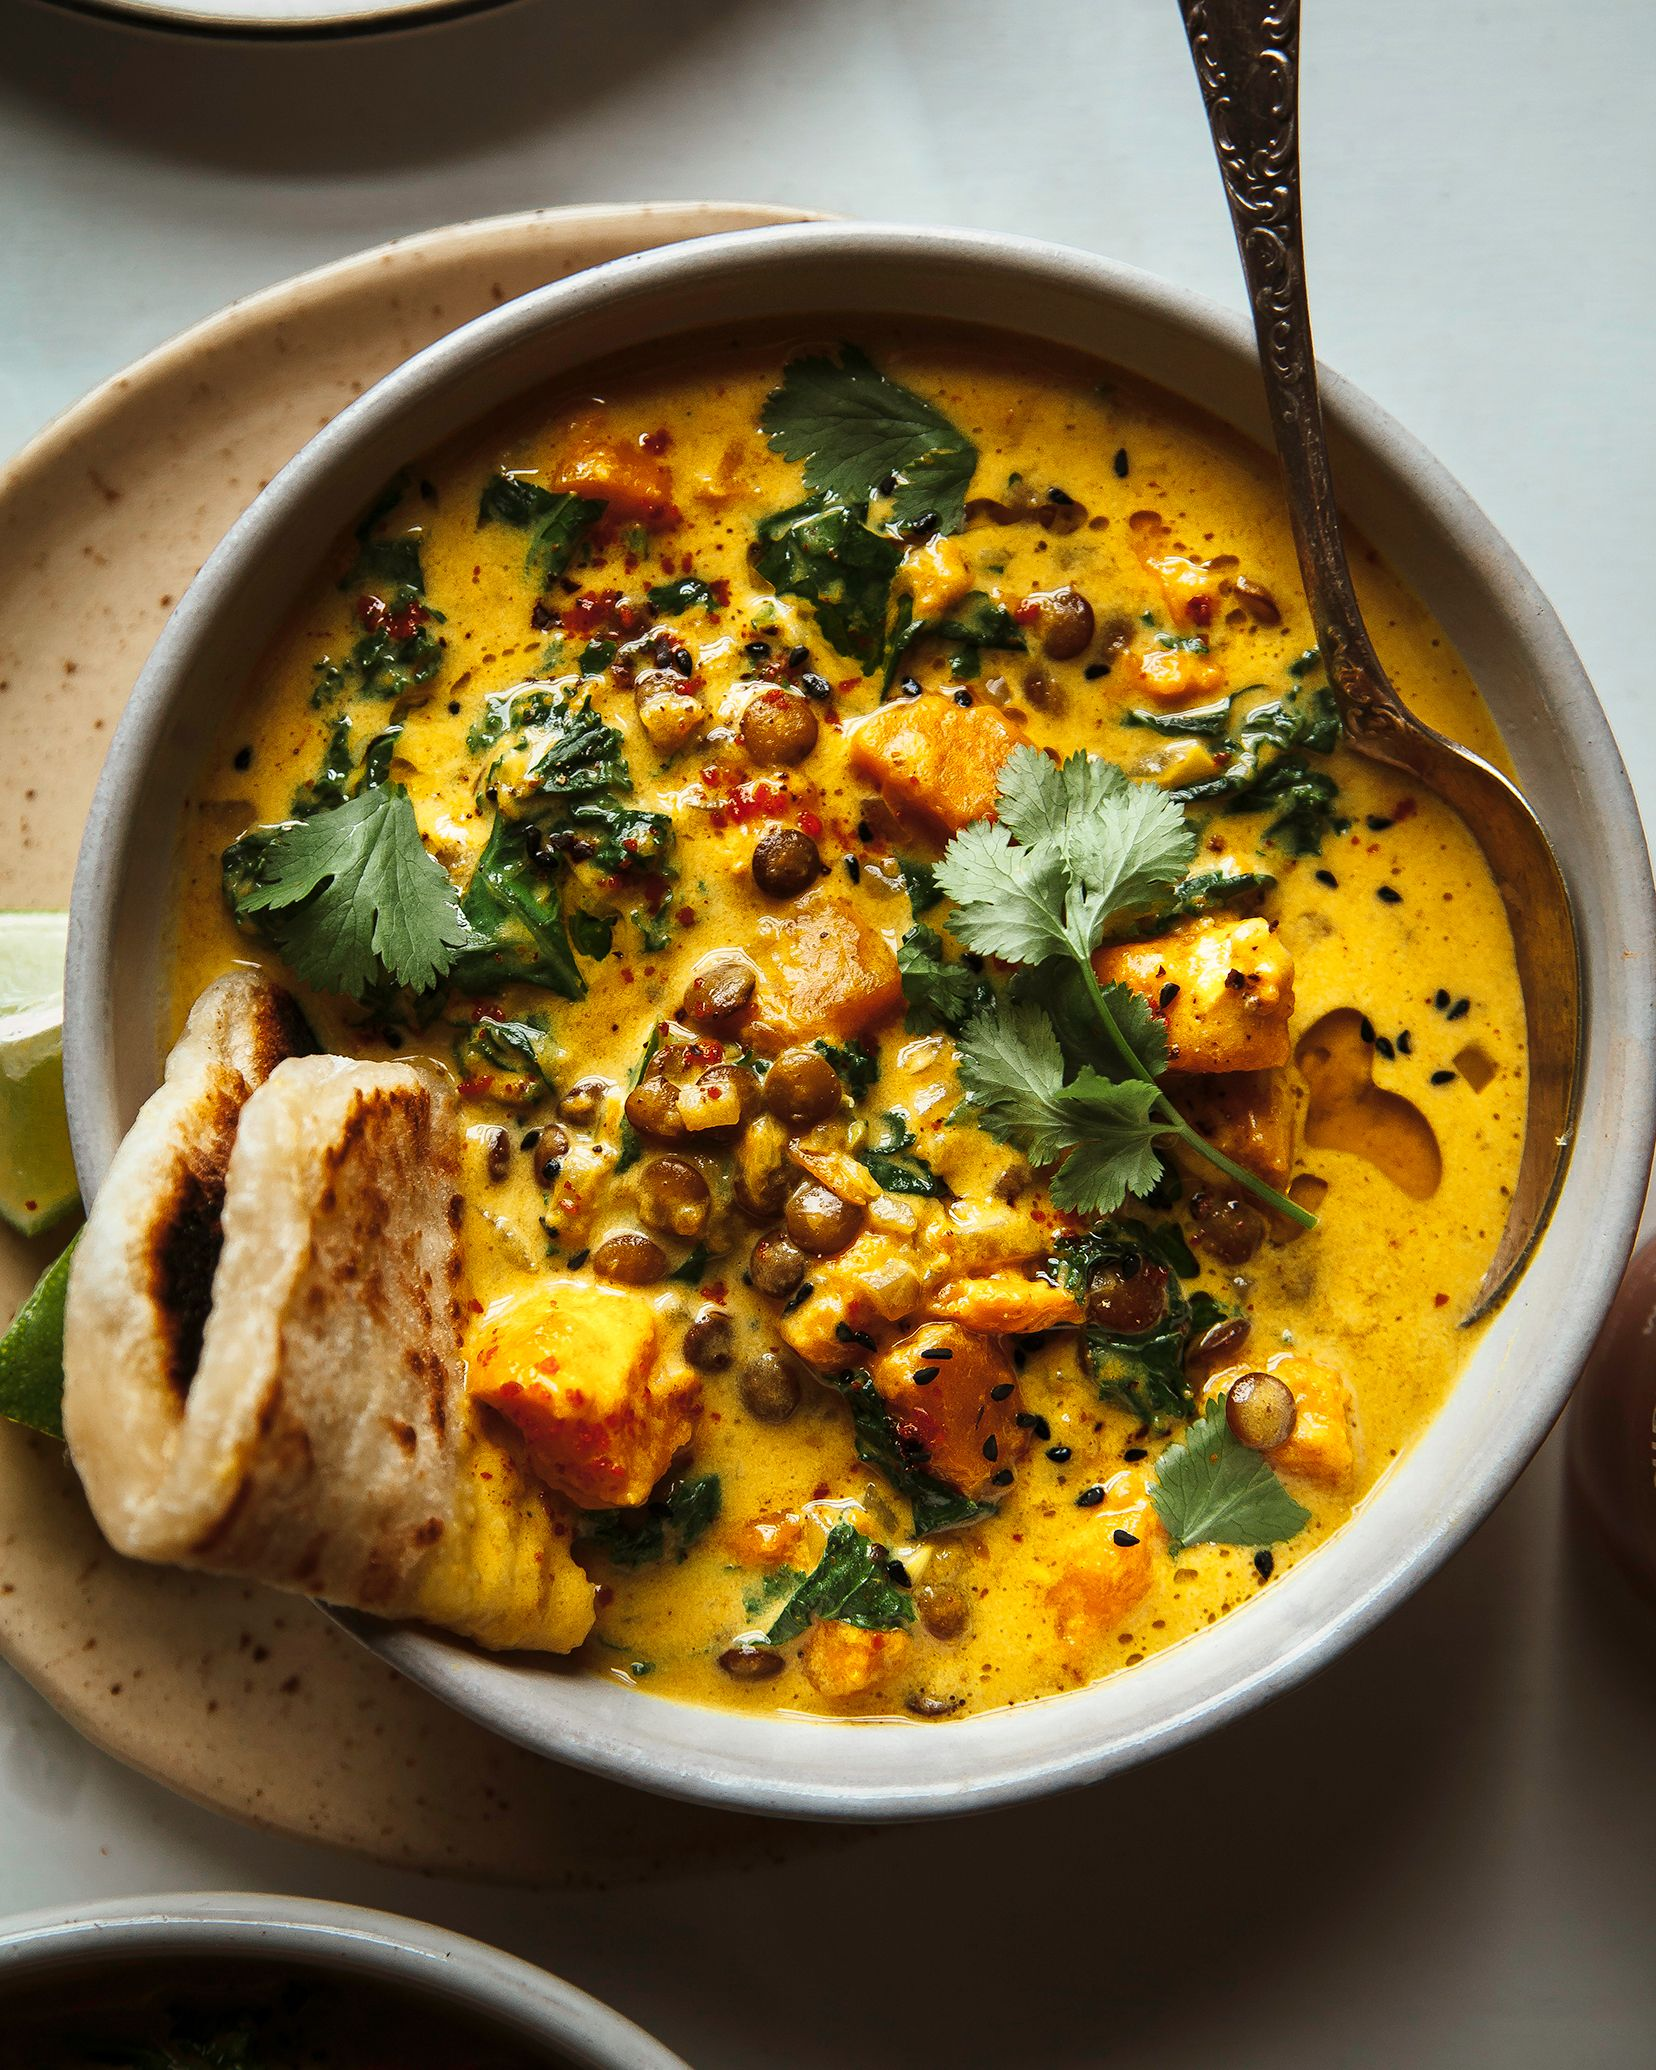 GINGER SWEET POTATO COCONUT MILK STEW WITH LENTILS & KALE